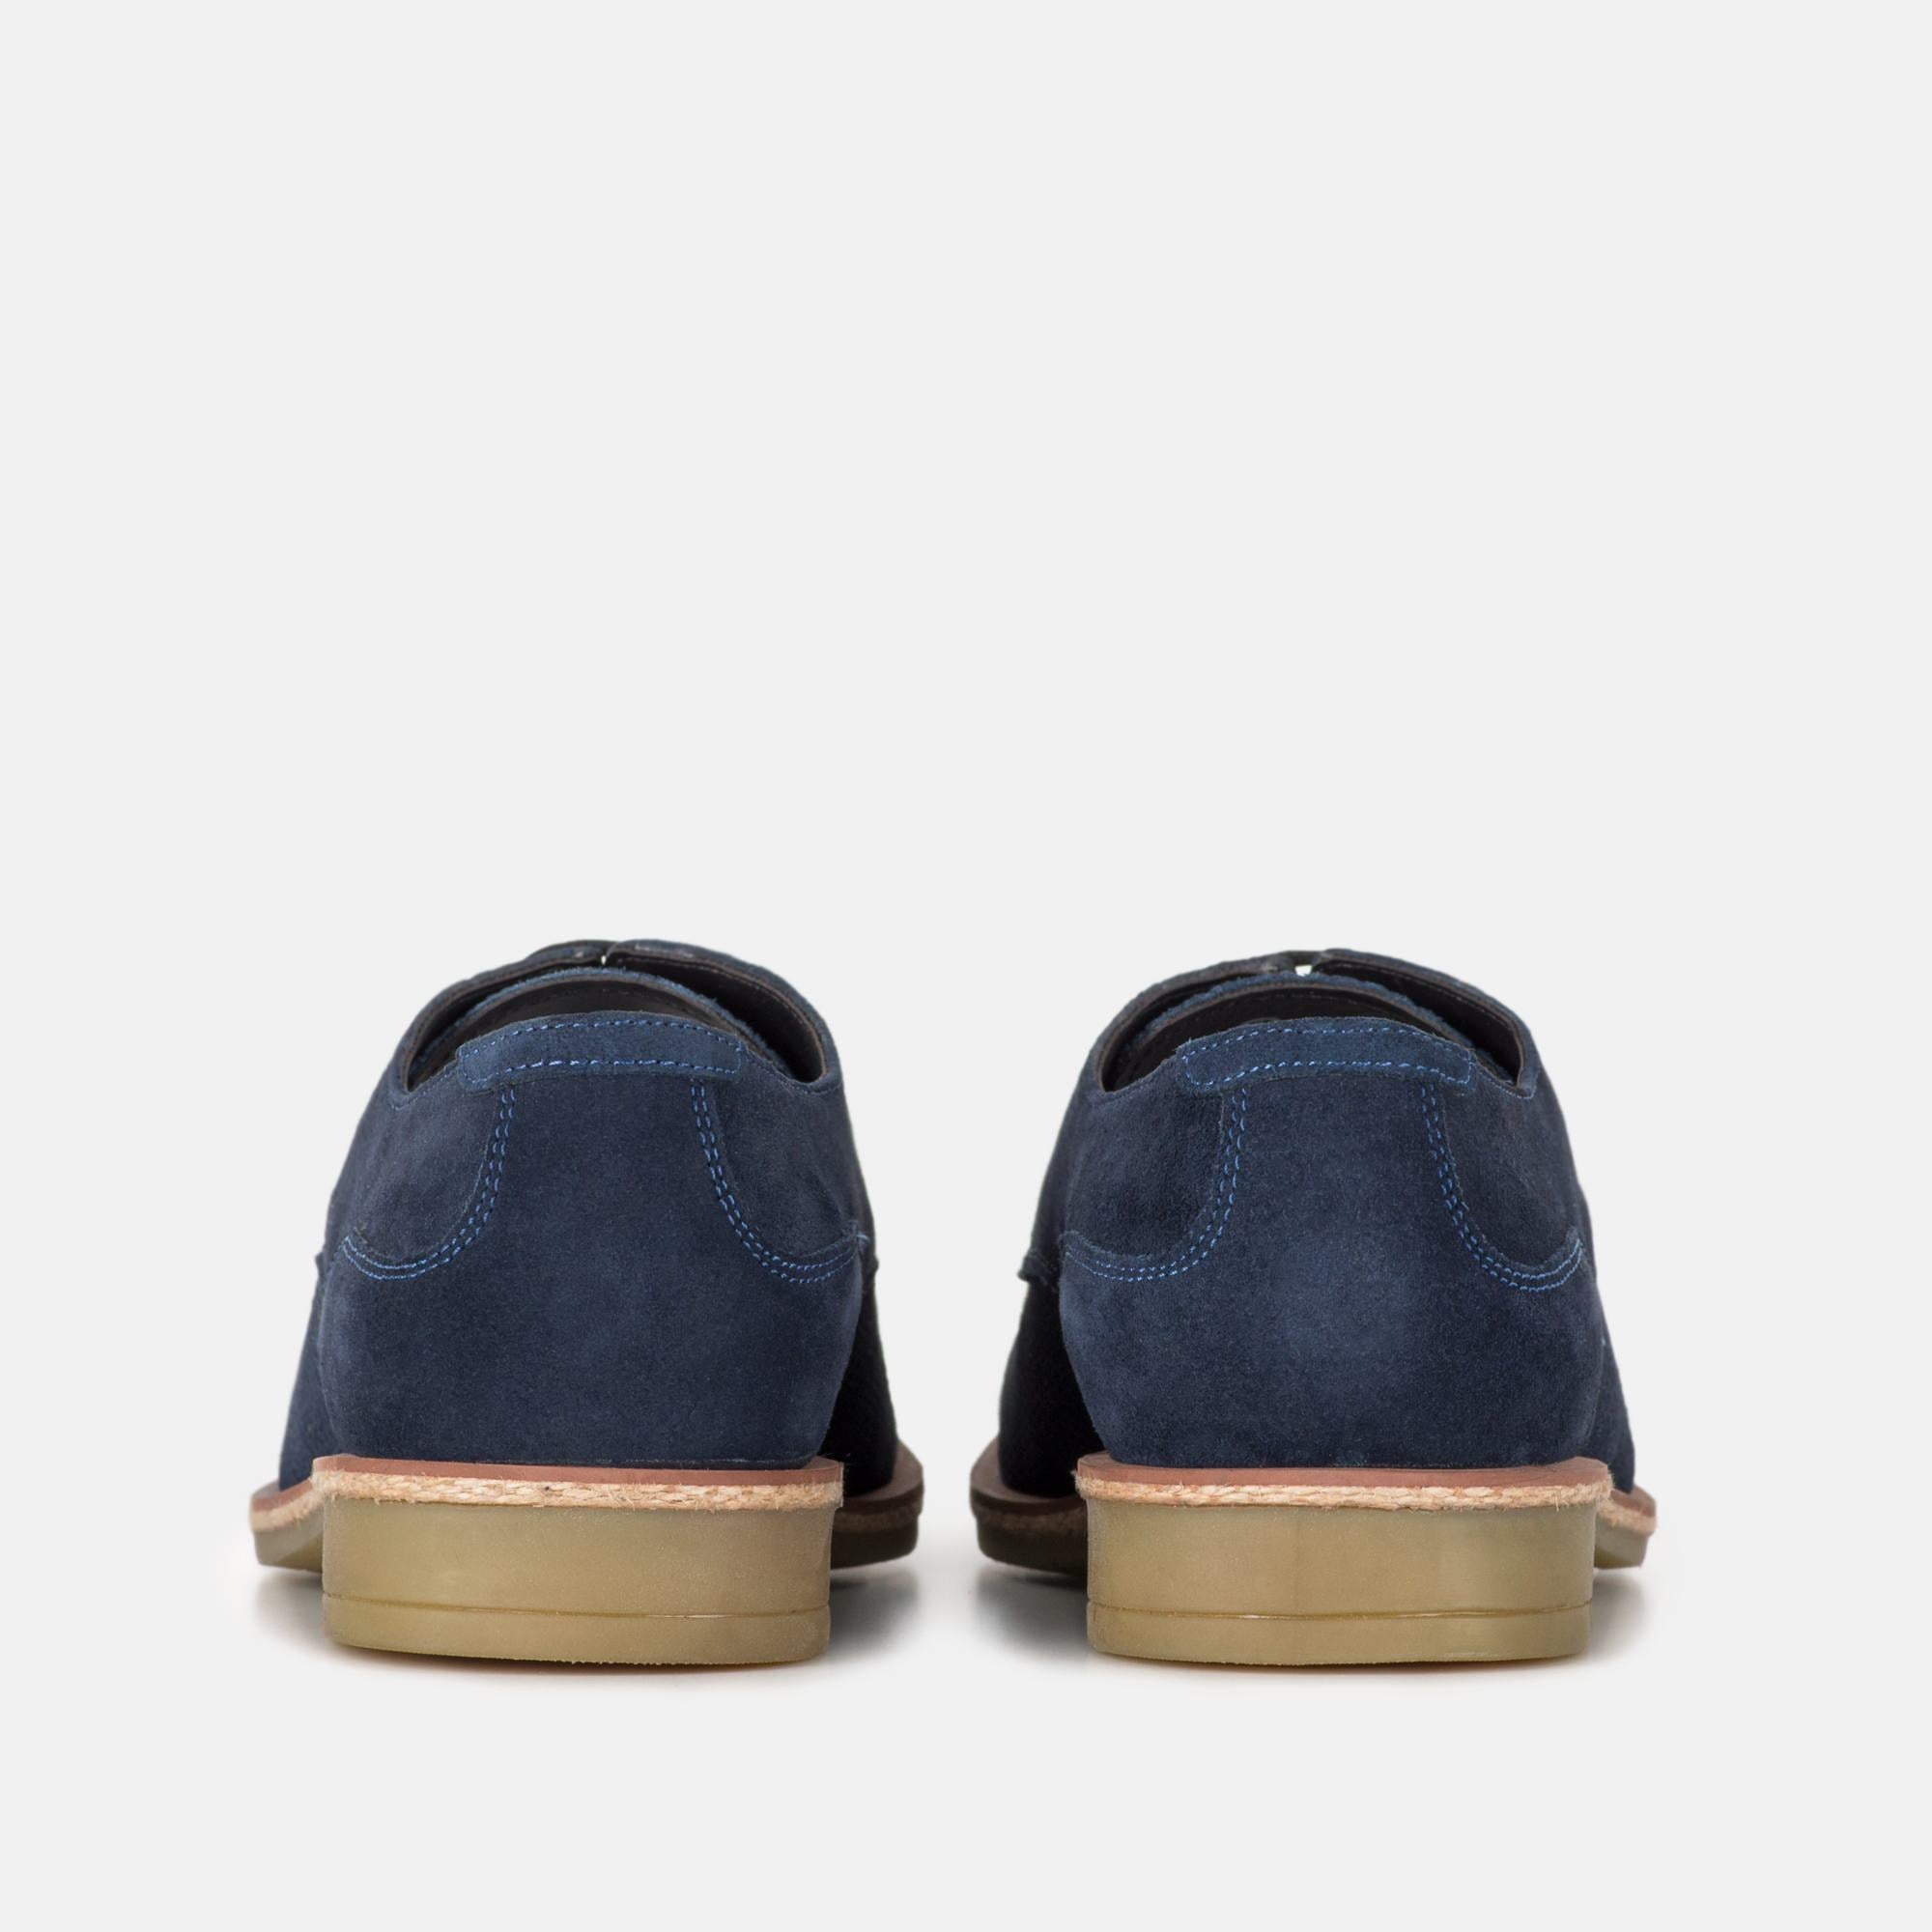 CLARKE NAVY SUEDE DERBY SHOE